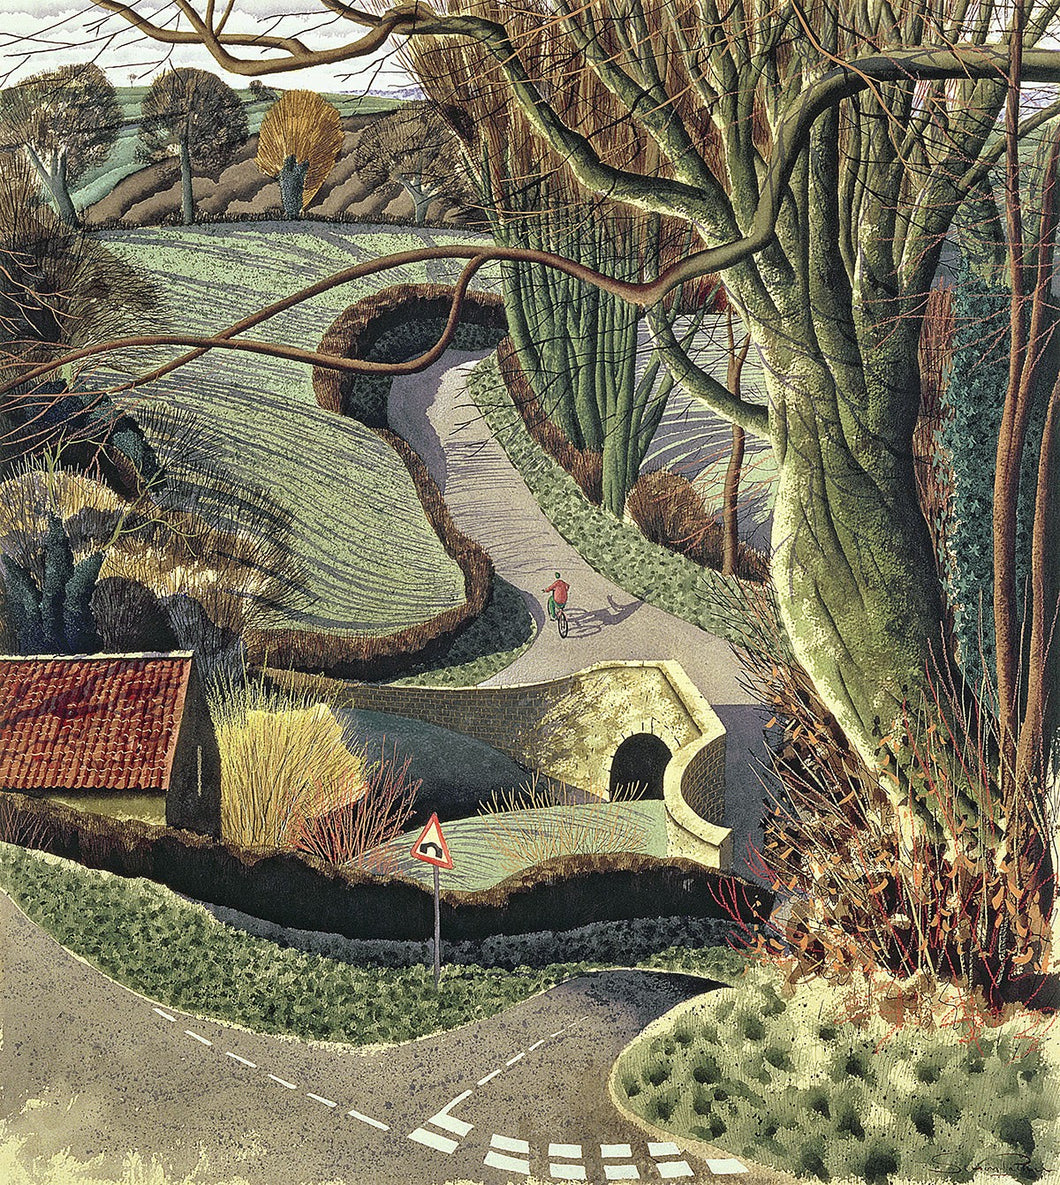 Cycling Home, 1996 by Simon Palmer